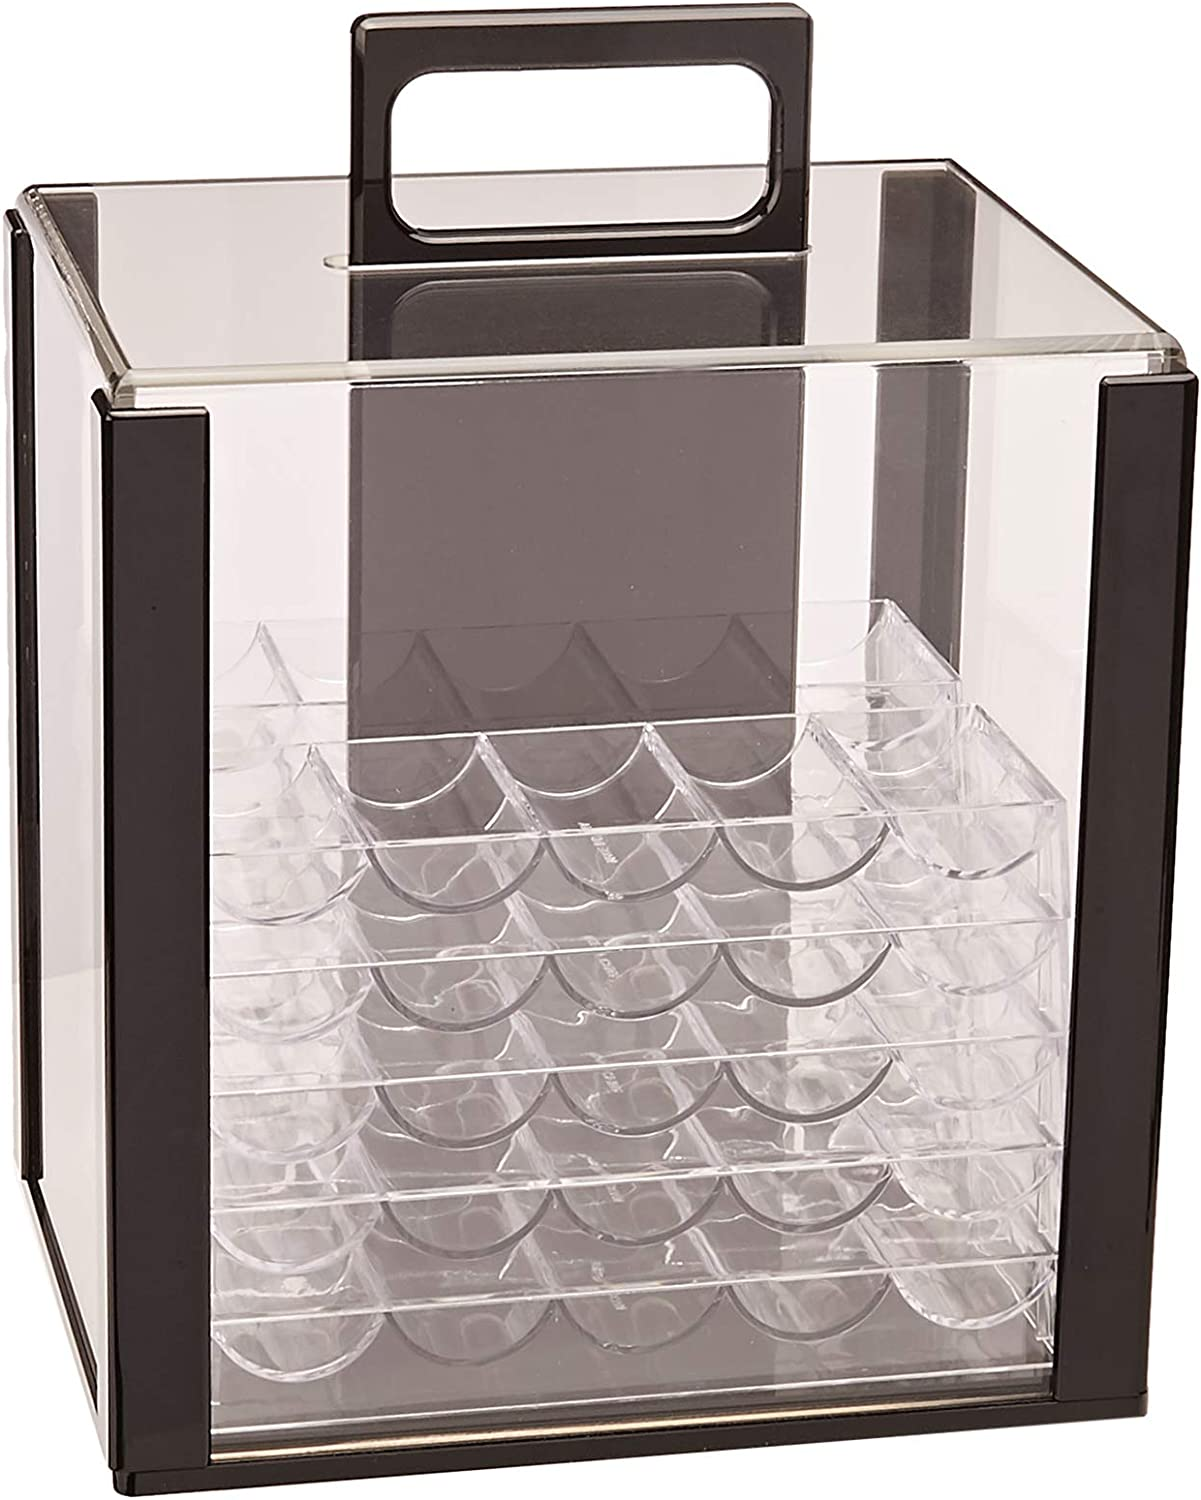 100D capacity poker chips box poker acrylic chips tray chips case with coverRSDE